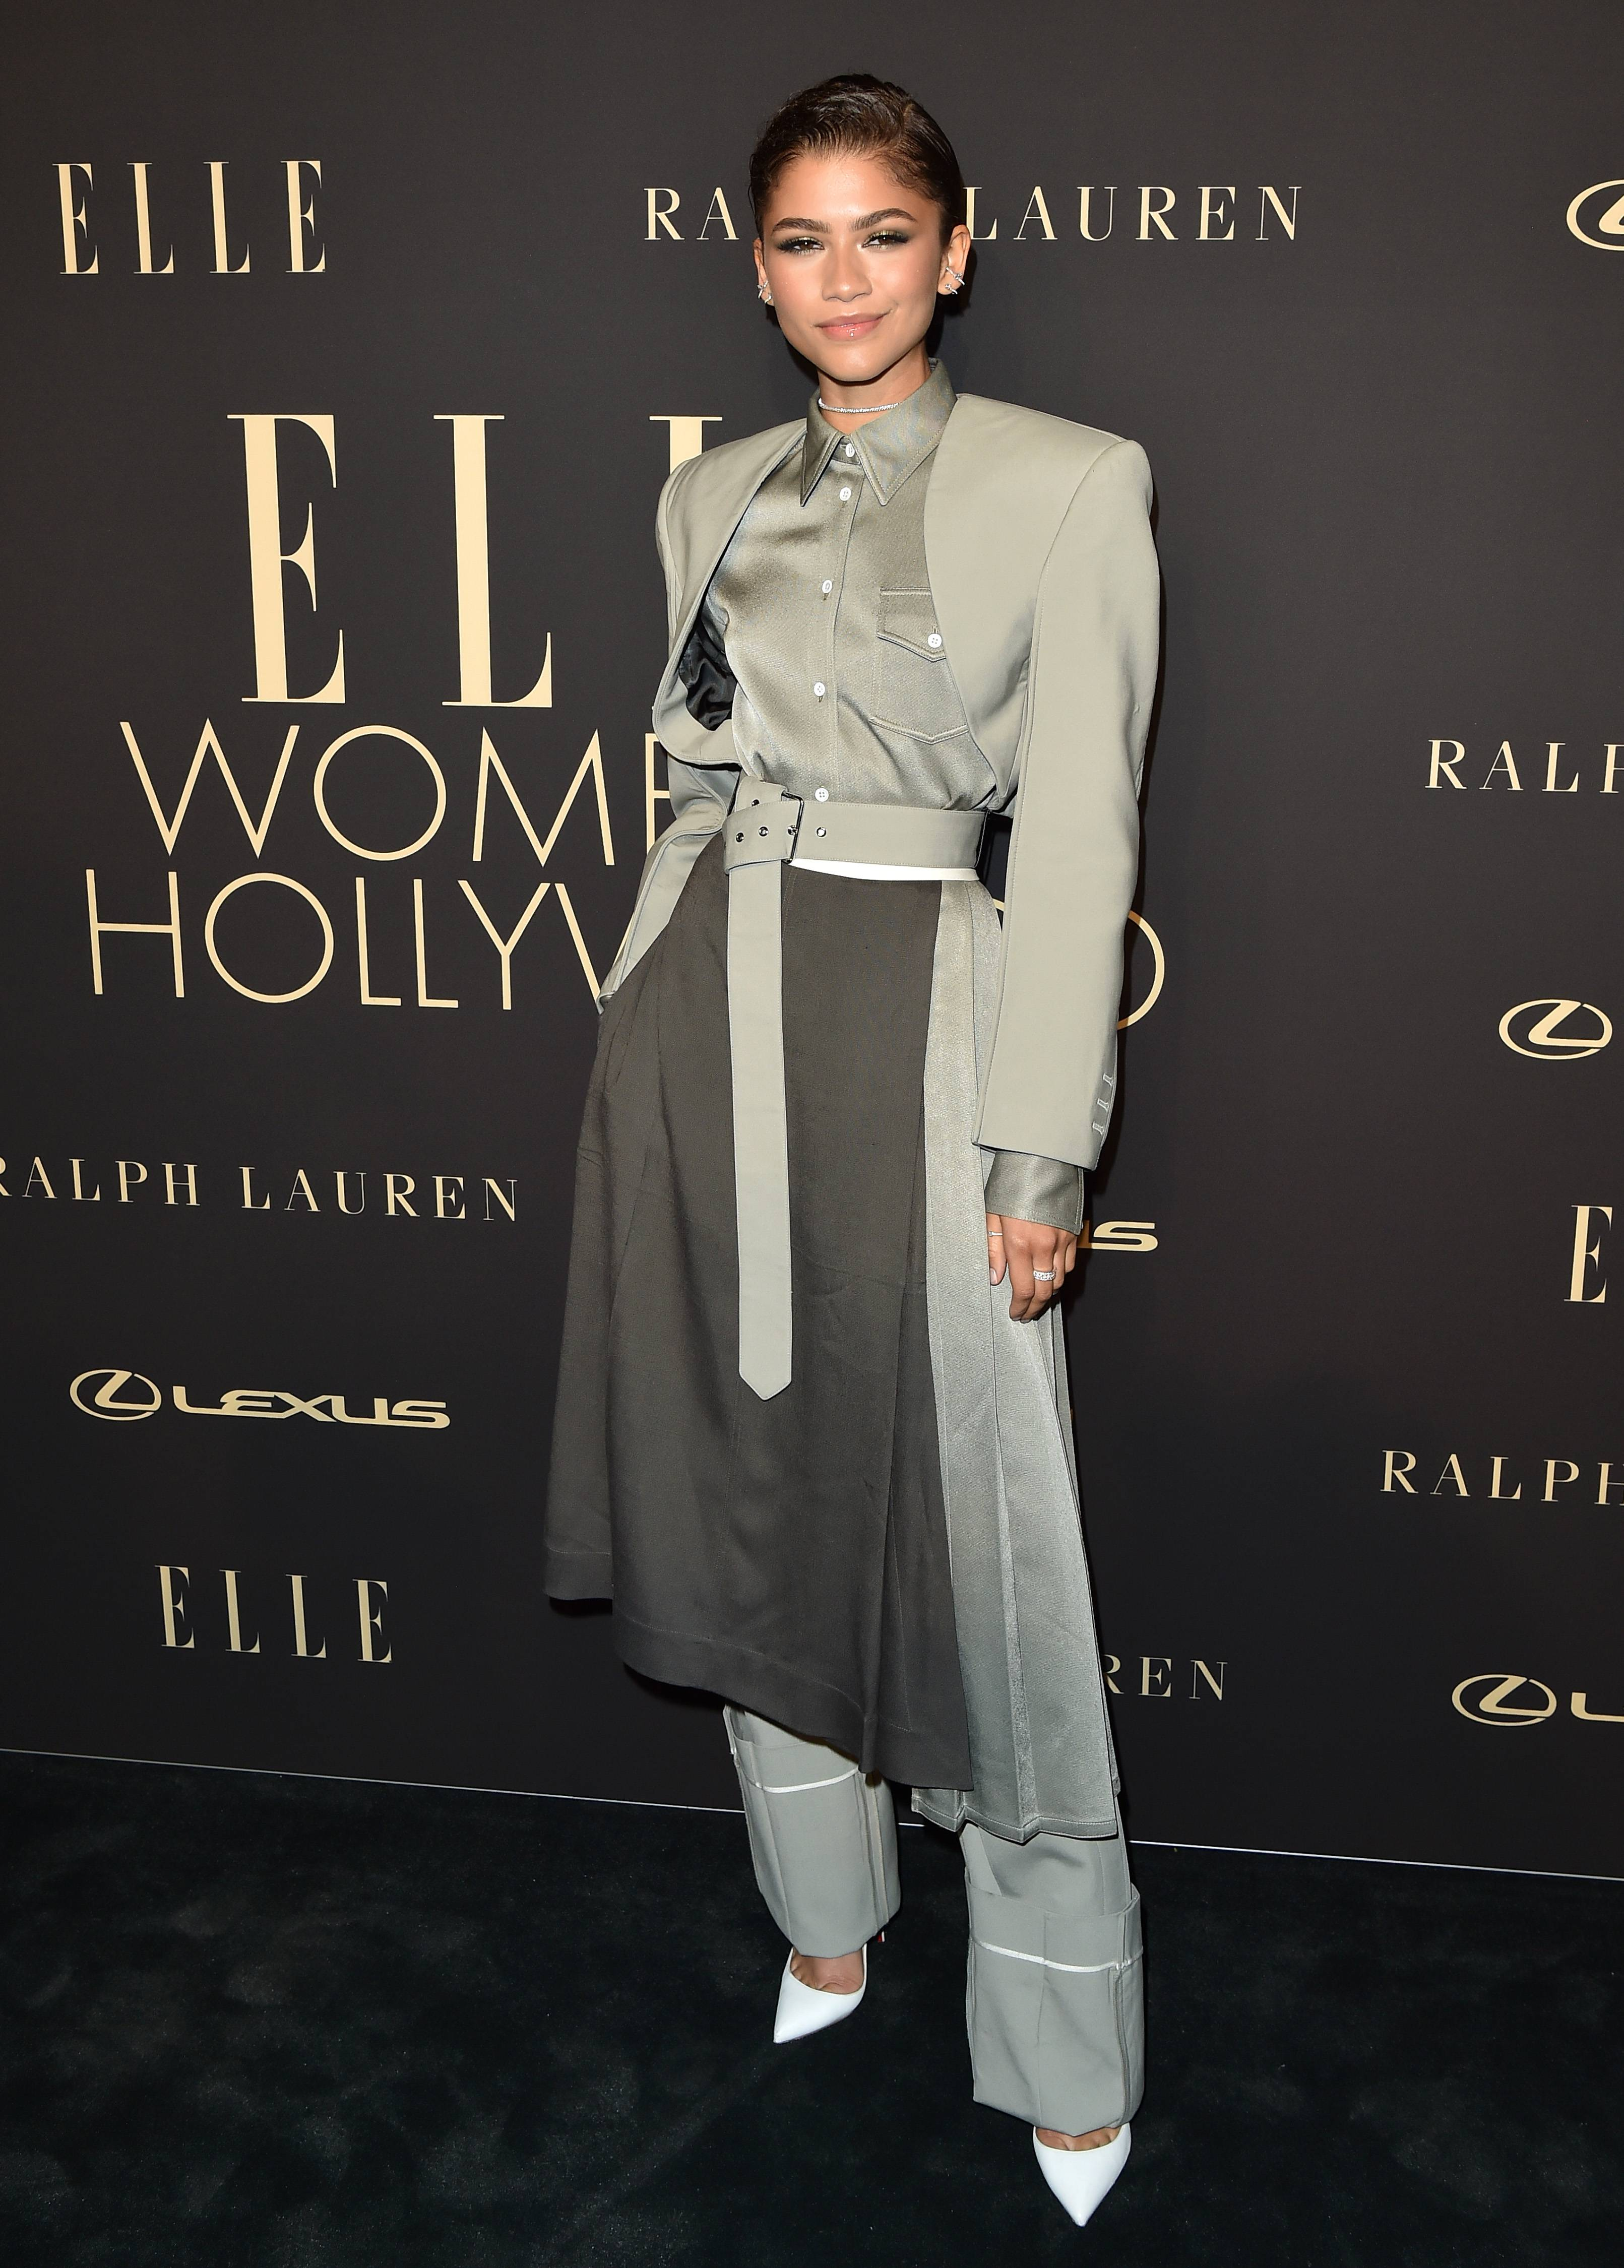 Shades of Z - Zendaya brought grey to life and we're here for it! She killed Elle's Women in Hollywood event wearing aSS 2020, off the runway, grey, pantsuit ensemble byPeter Do. Styled by Law Roach, she paired the look with her favorite, white, Louboutin 'So Kate' pumps ($780) and jewelry byYvan Tufenkjianjewelry.(Photo: Axelle/Bauer-Griffin/FilmMagic)